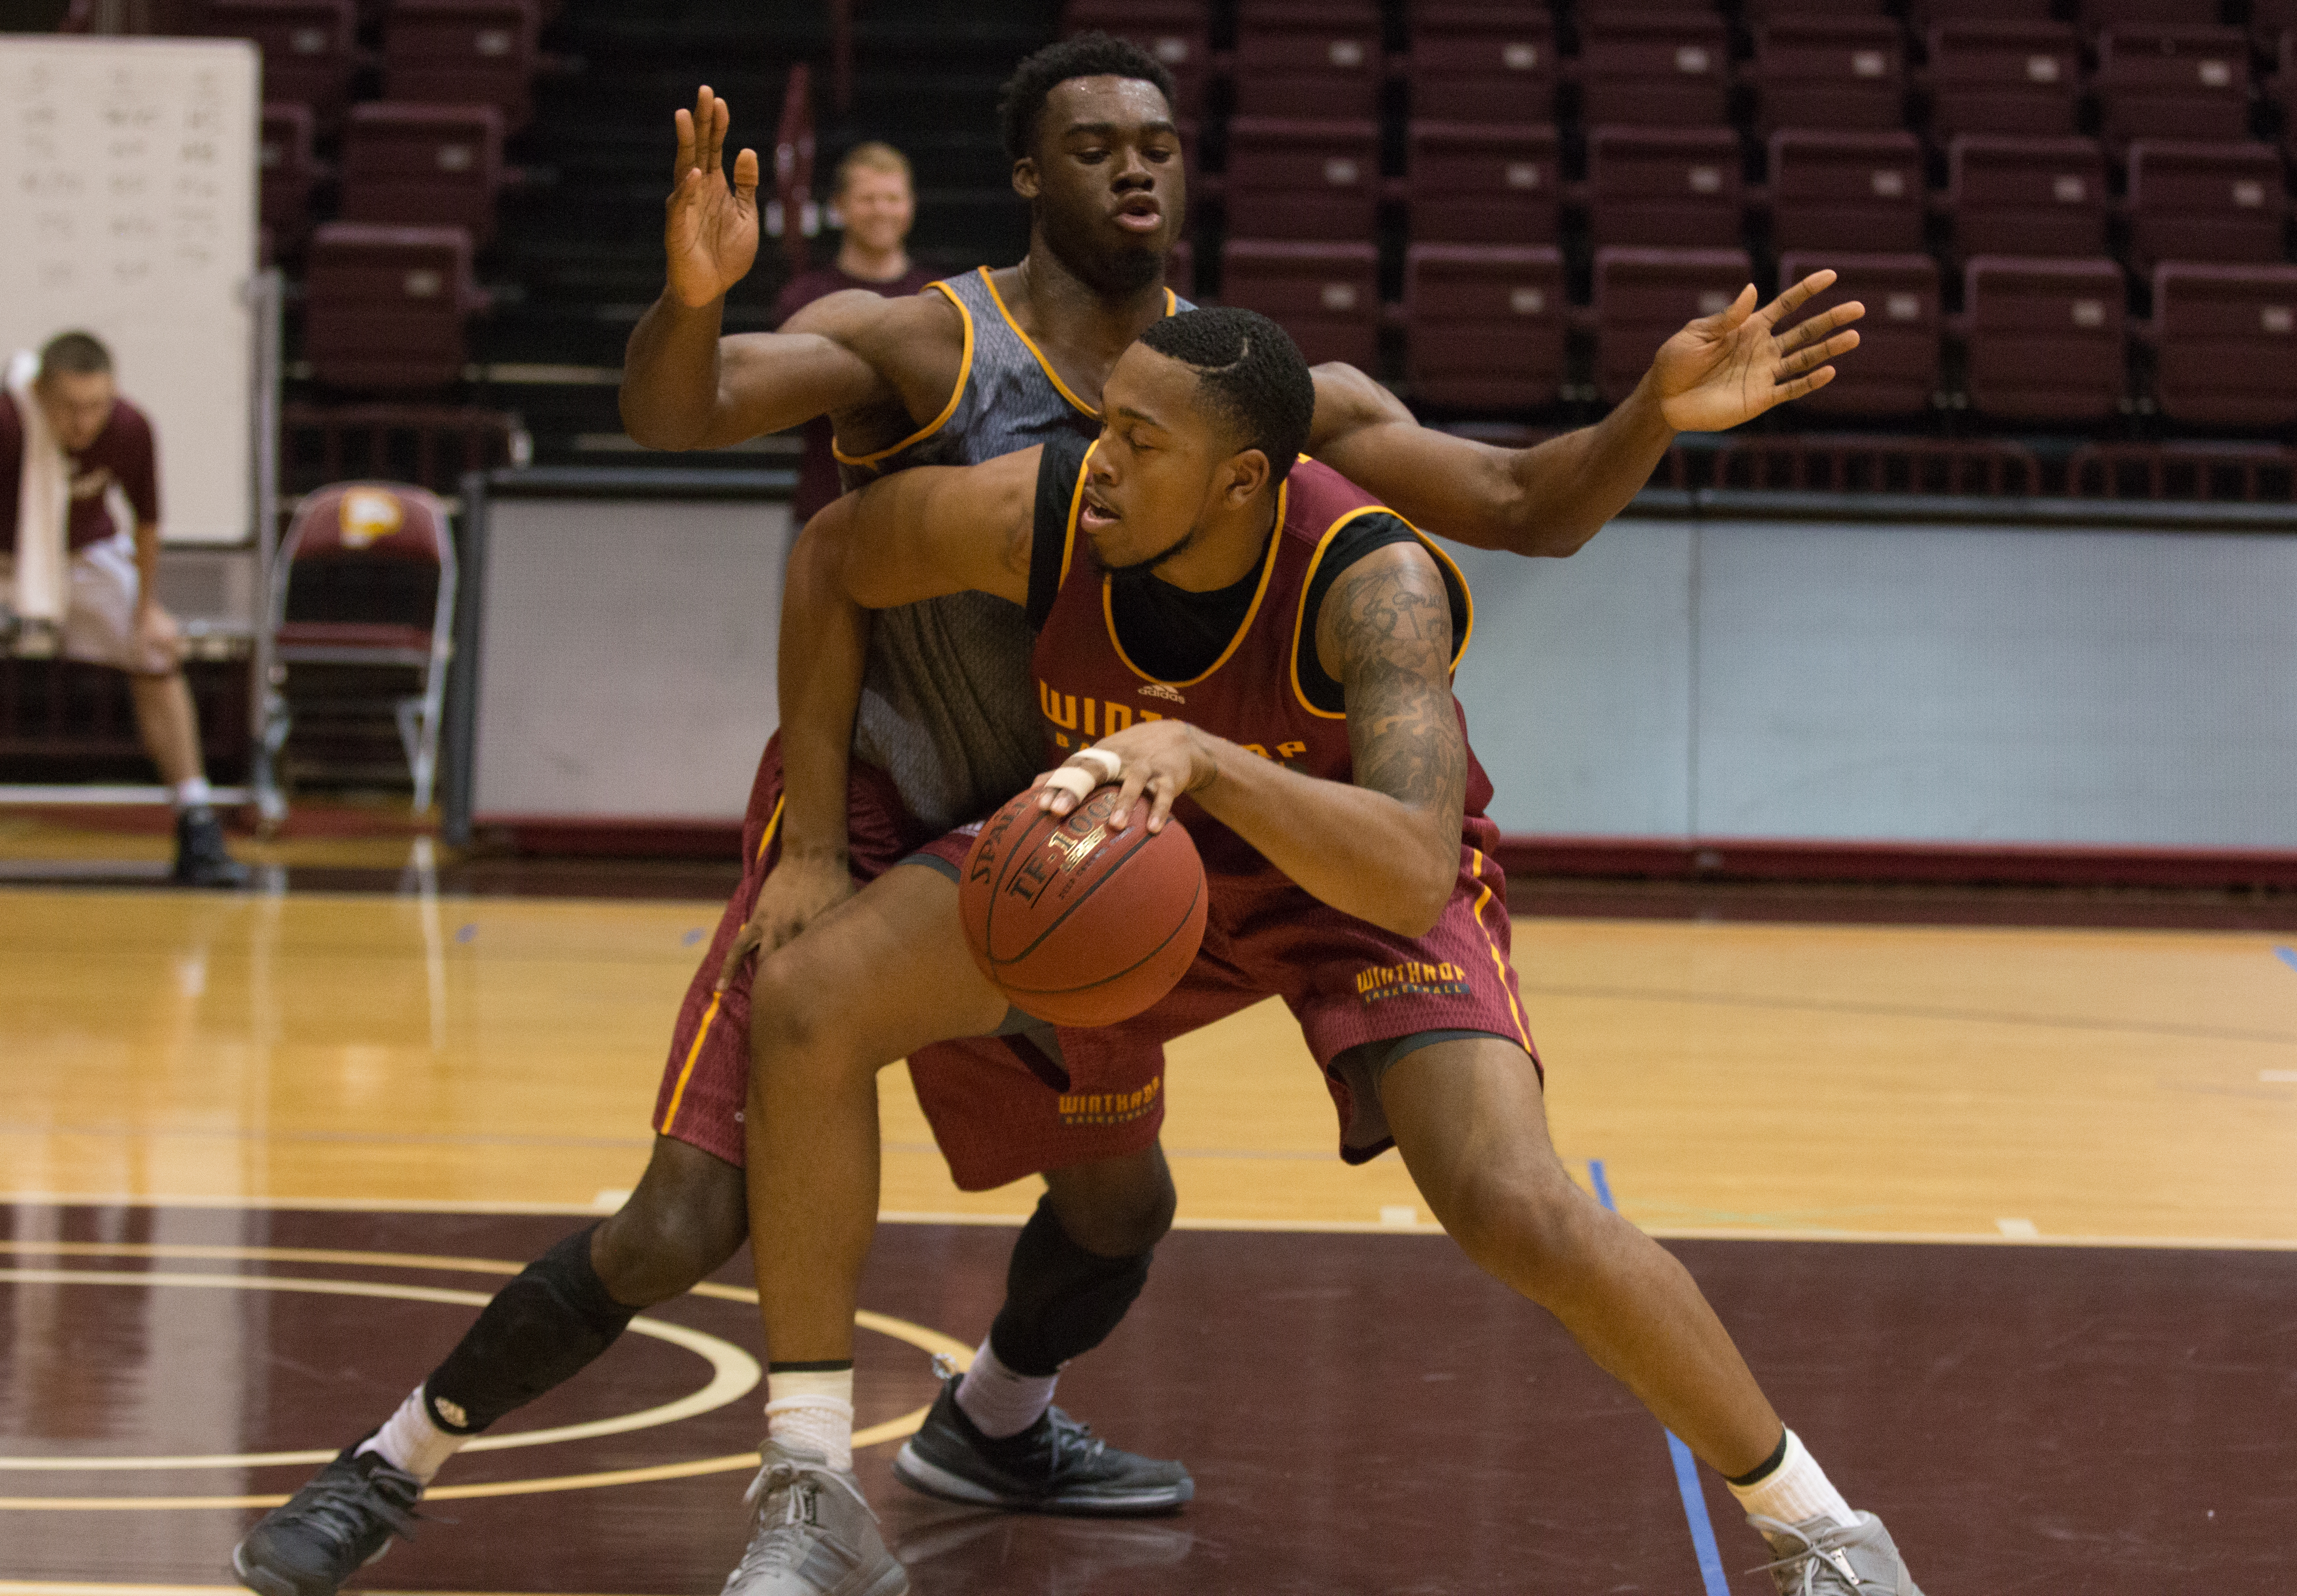 Senior center Zach Pryce pictured at practice with Duby Okeke. Jacob Hallex/ The Johnsonian